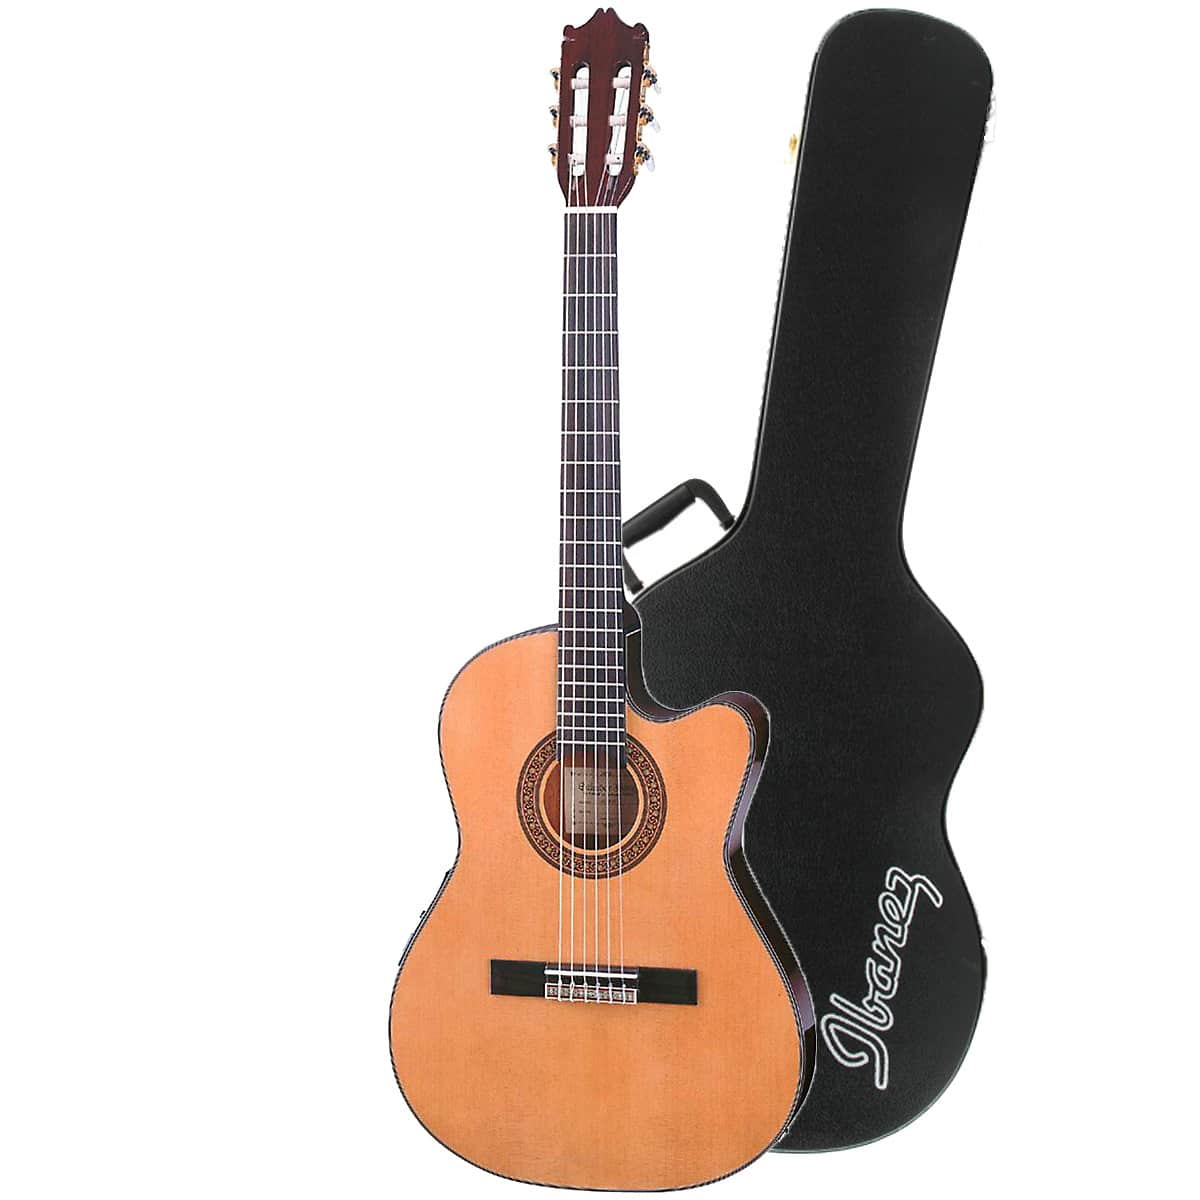 ibanez ga5tce am classical acoustic electric guitar in amber reverb. Black Bedroom Furniture Sets. Home Design Ideas